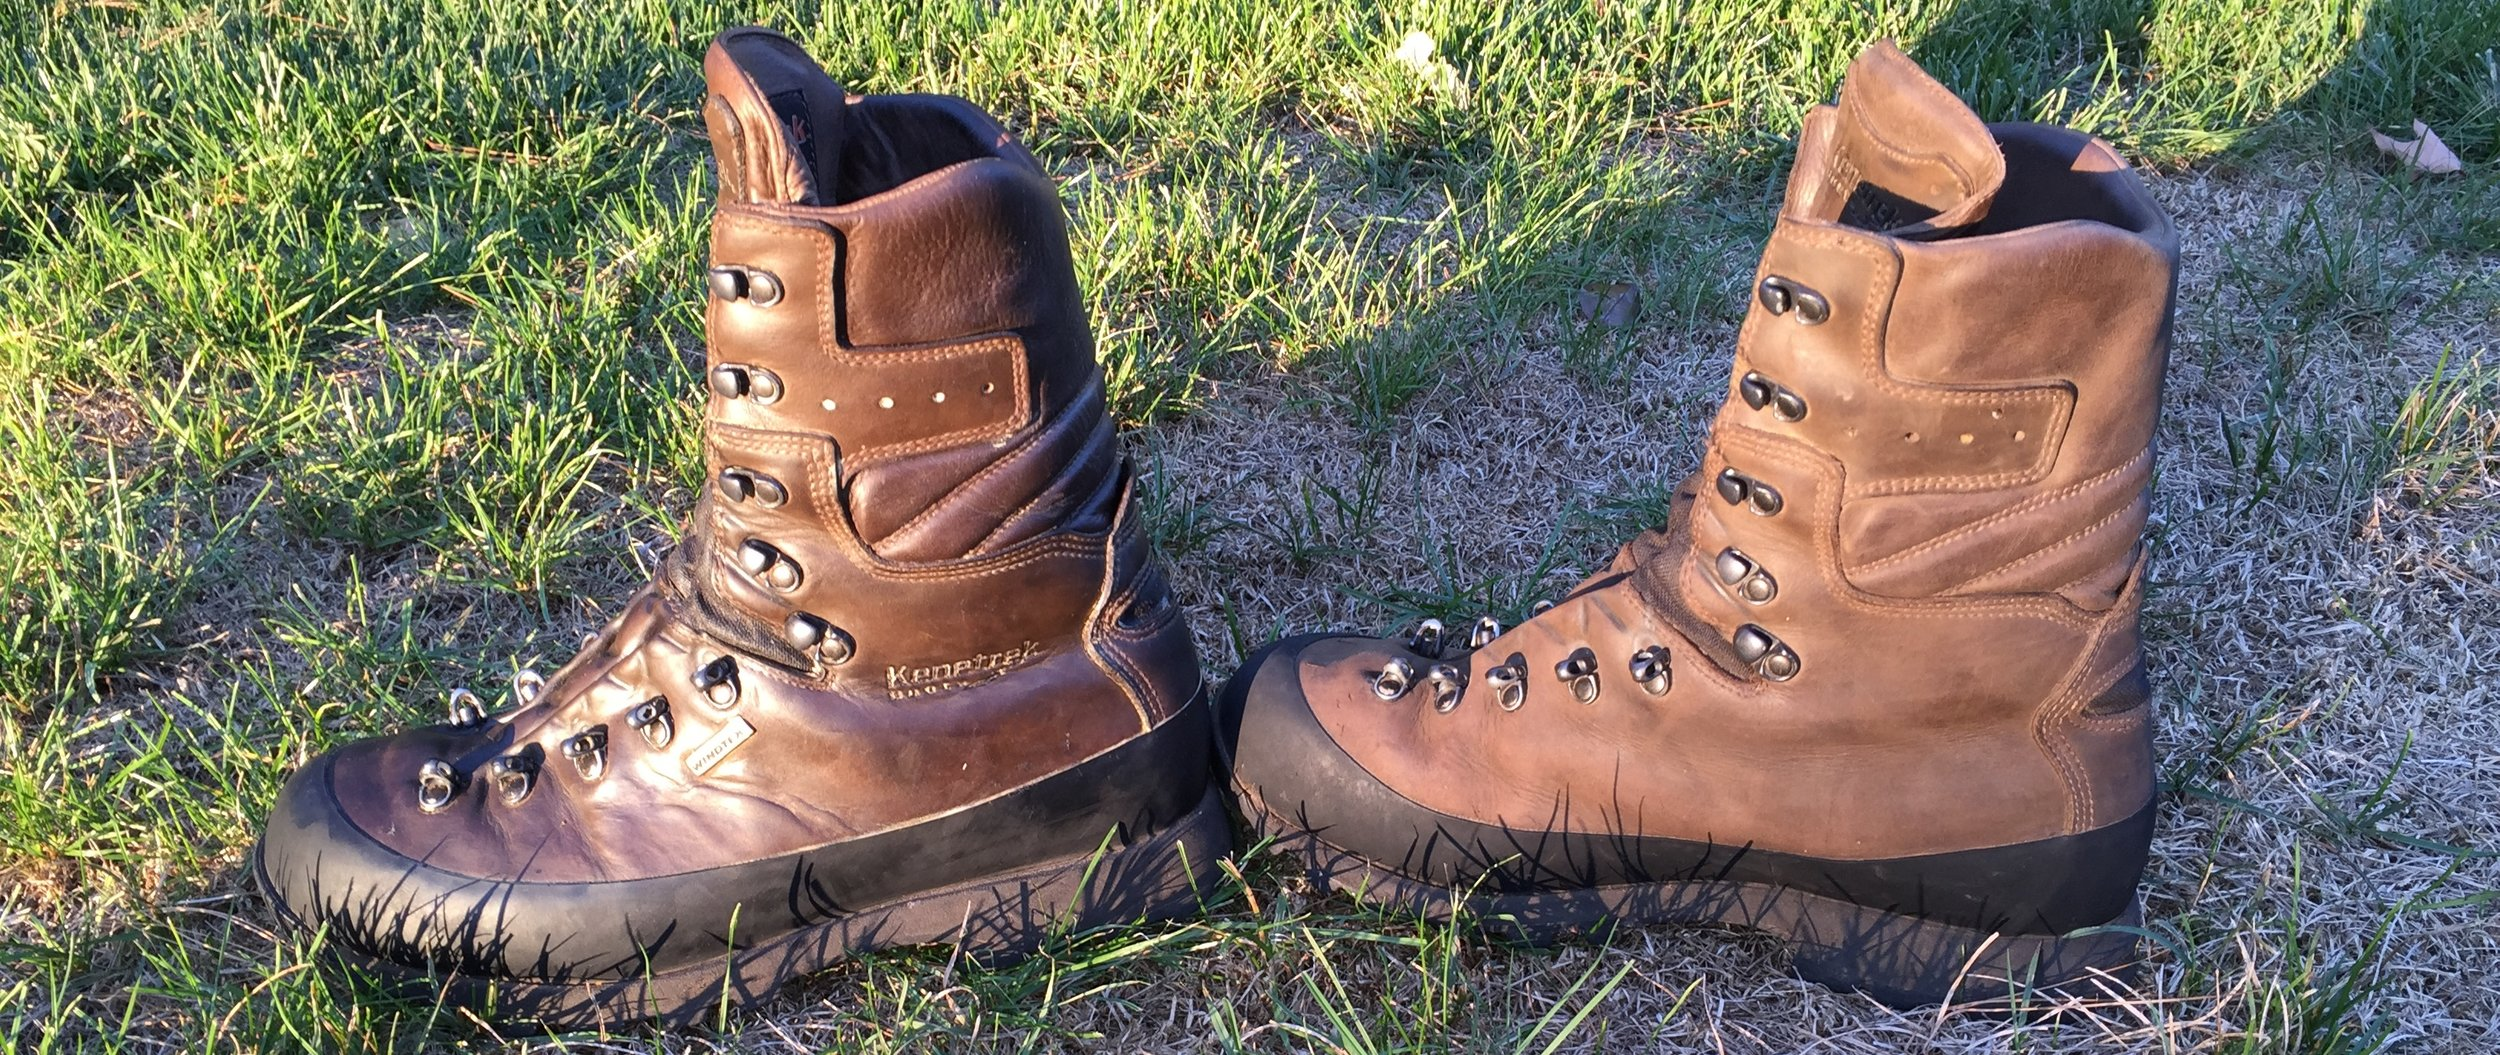 Treating boots will change their color. The boot on the left has been treated with  Kenetrek Ke-Wax .